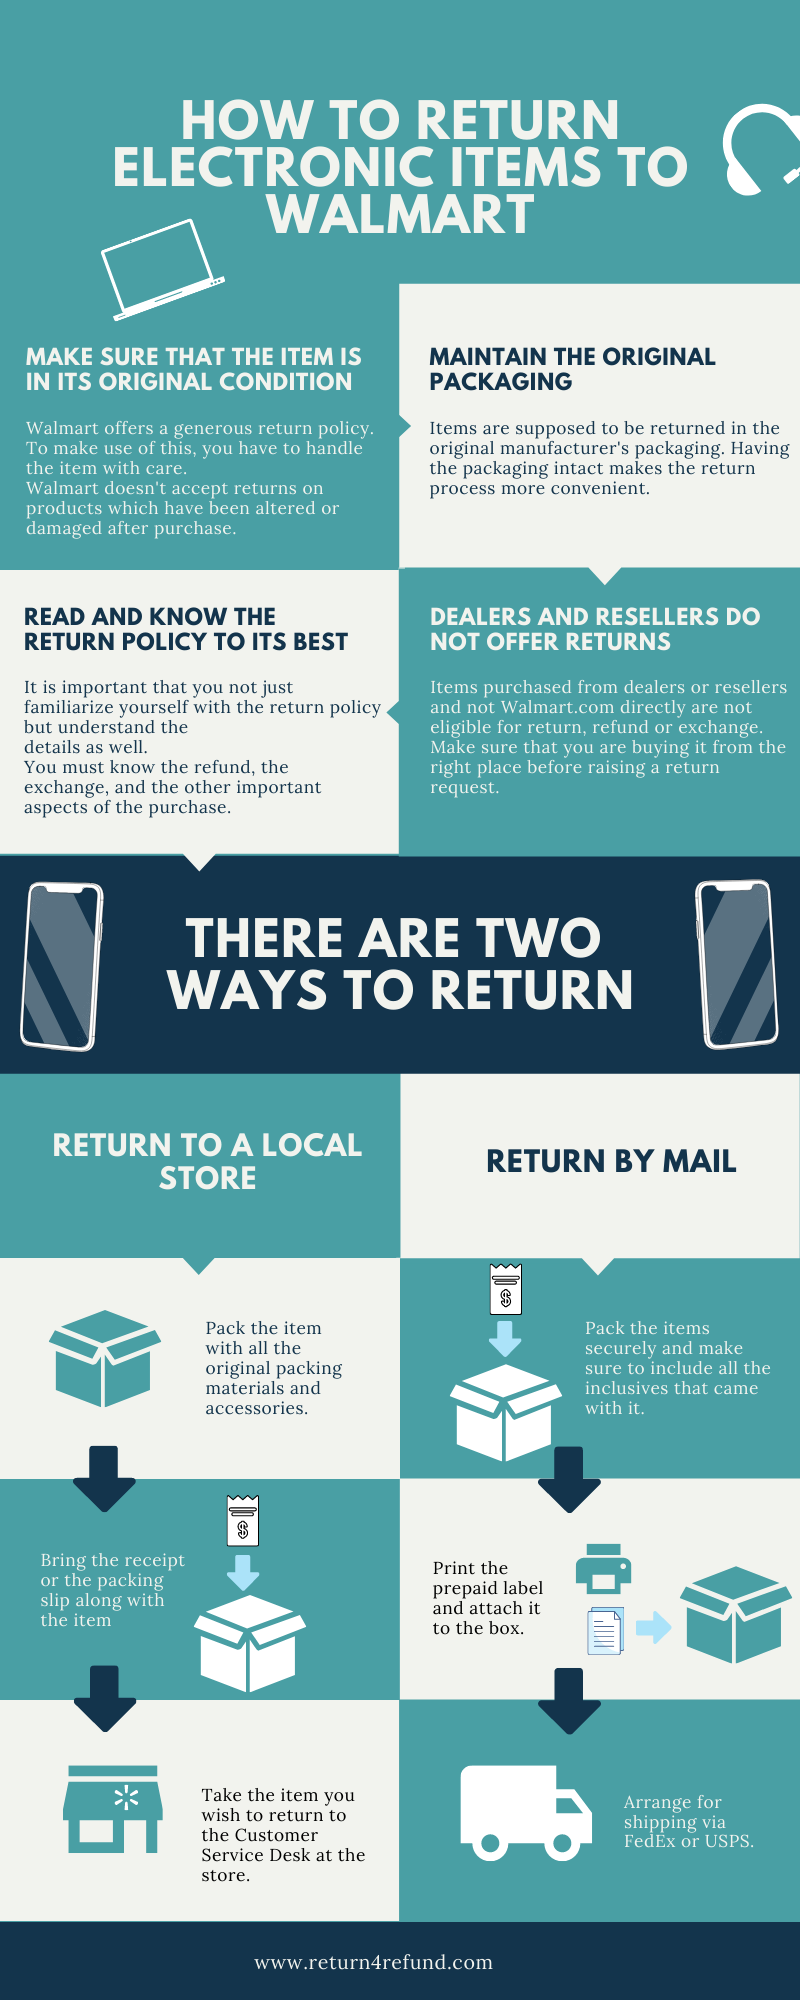 Walmart Electronics Return Policy infographic